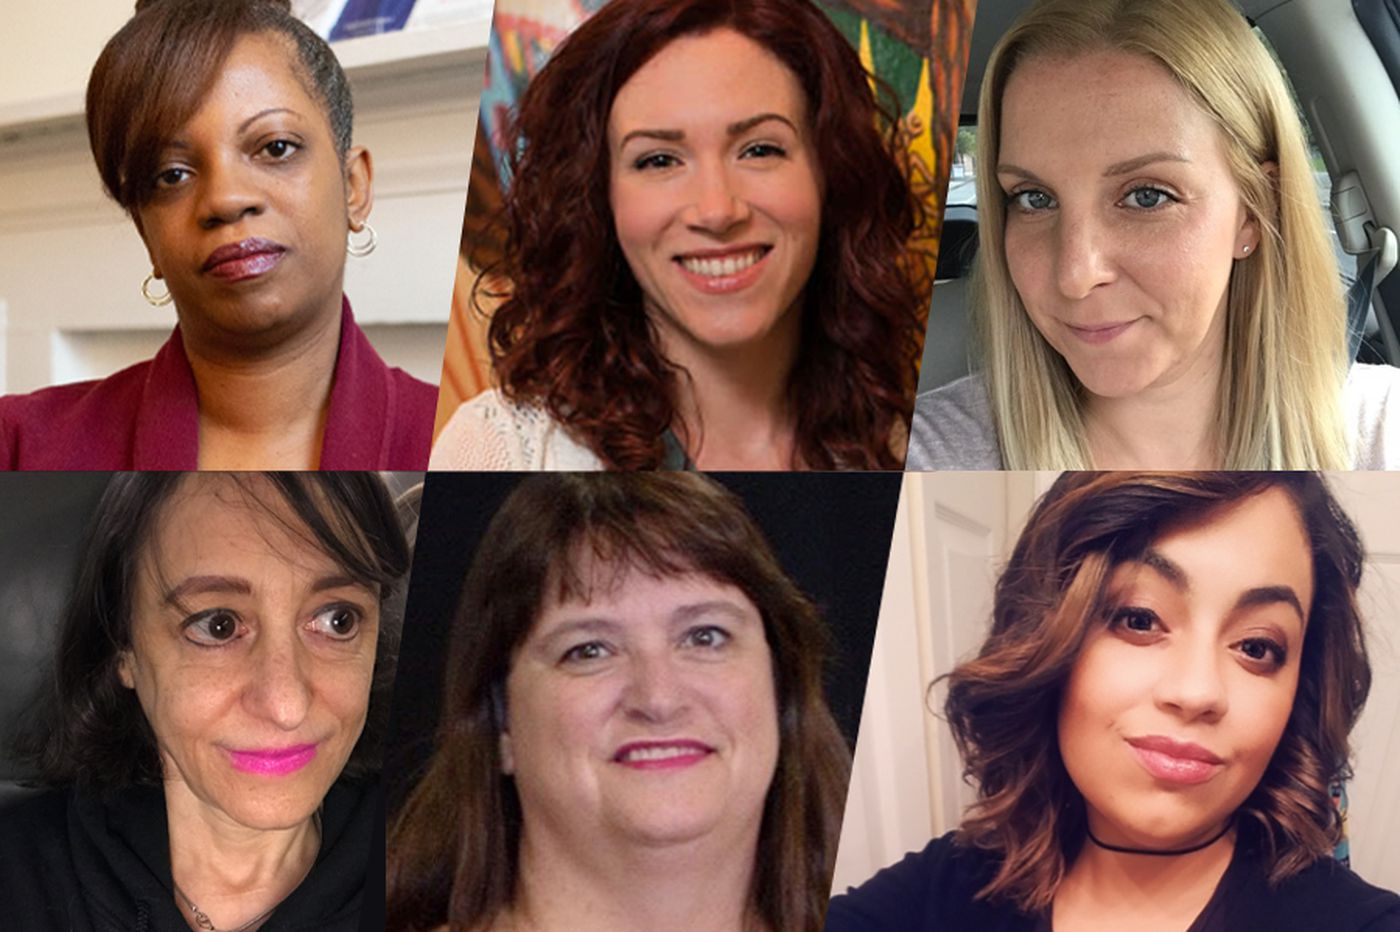 It's been 2 years since they said #MeToo. 6 local women on what's changed — and what hasn't.